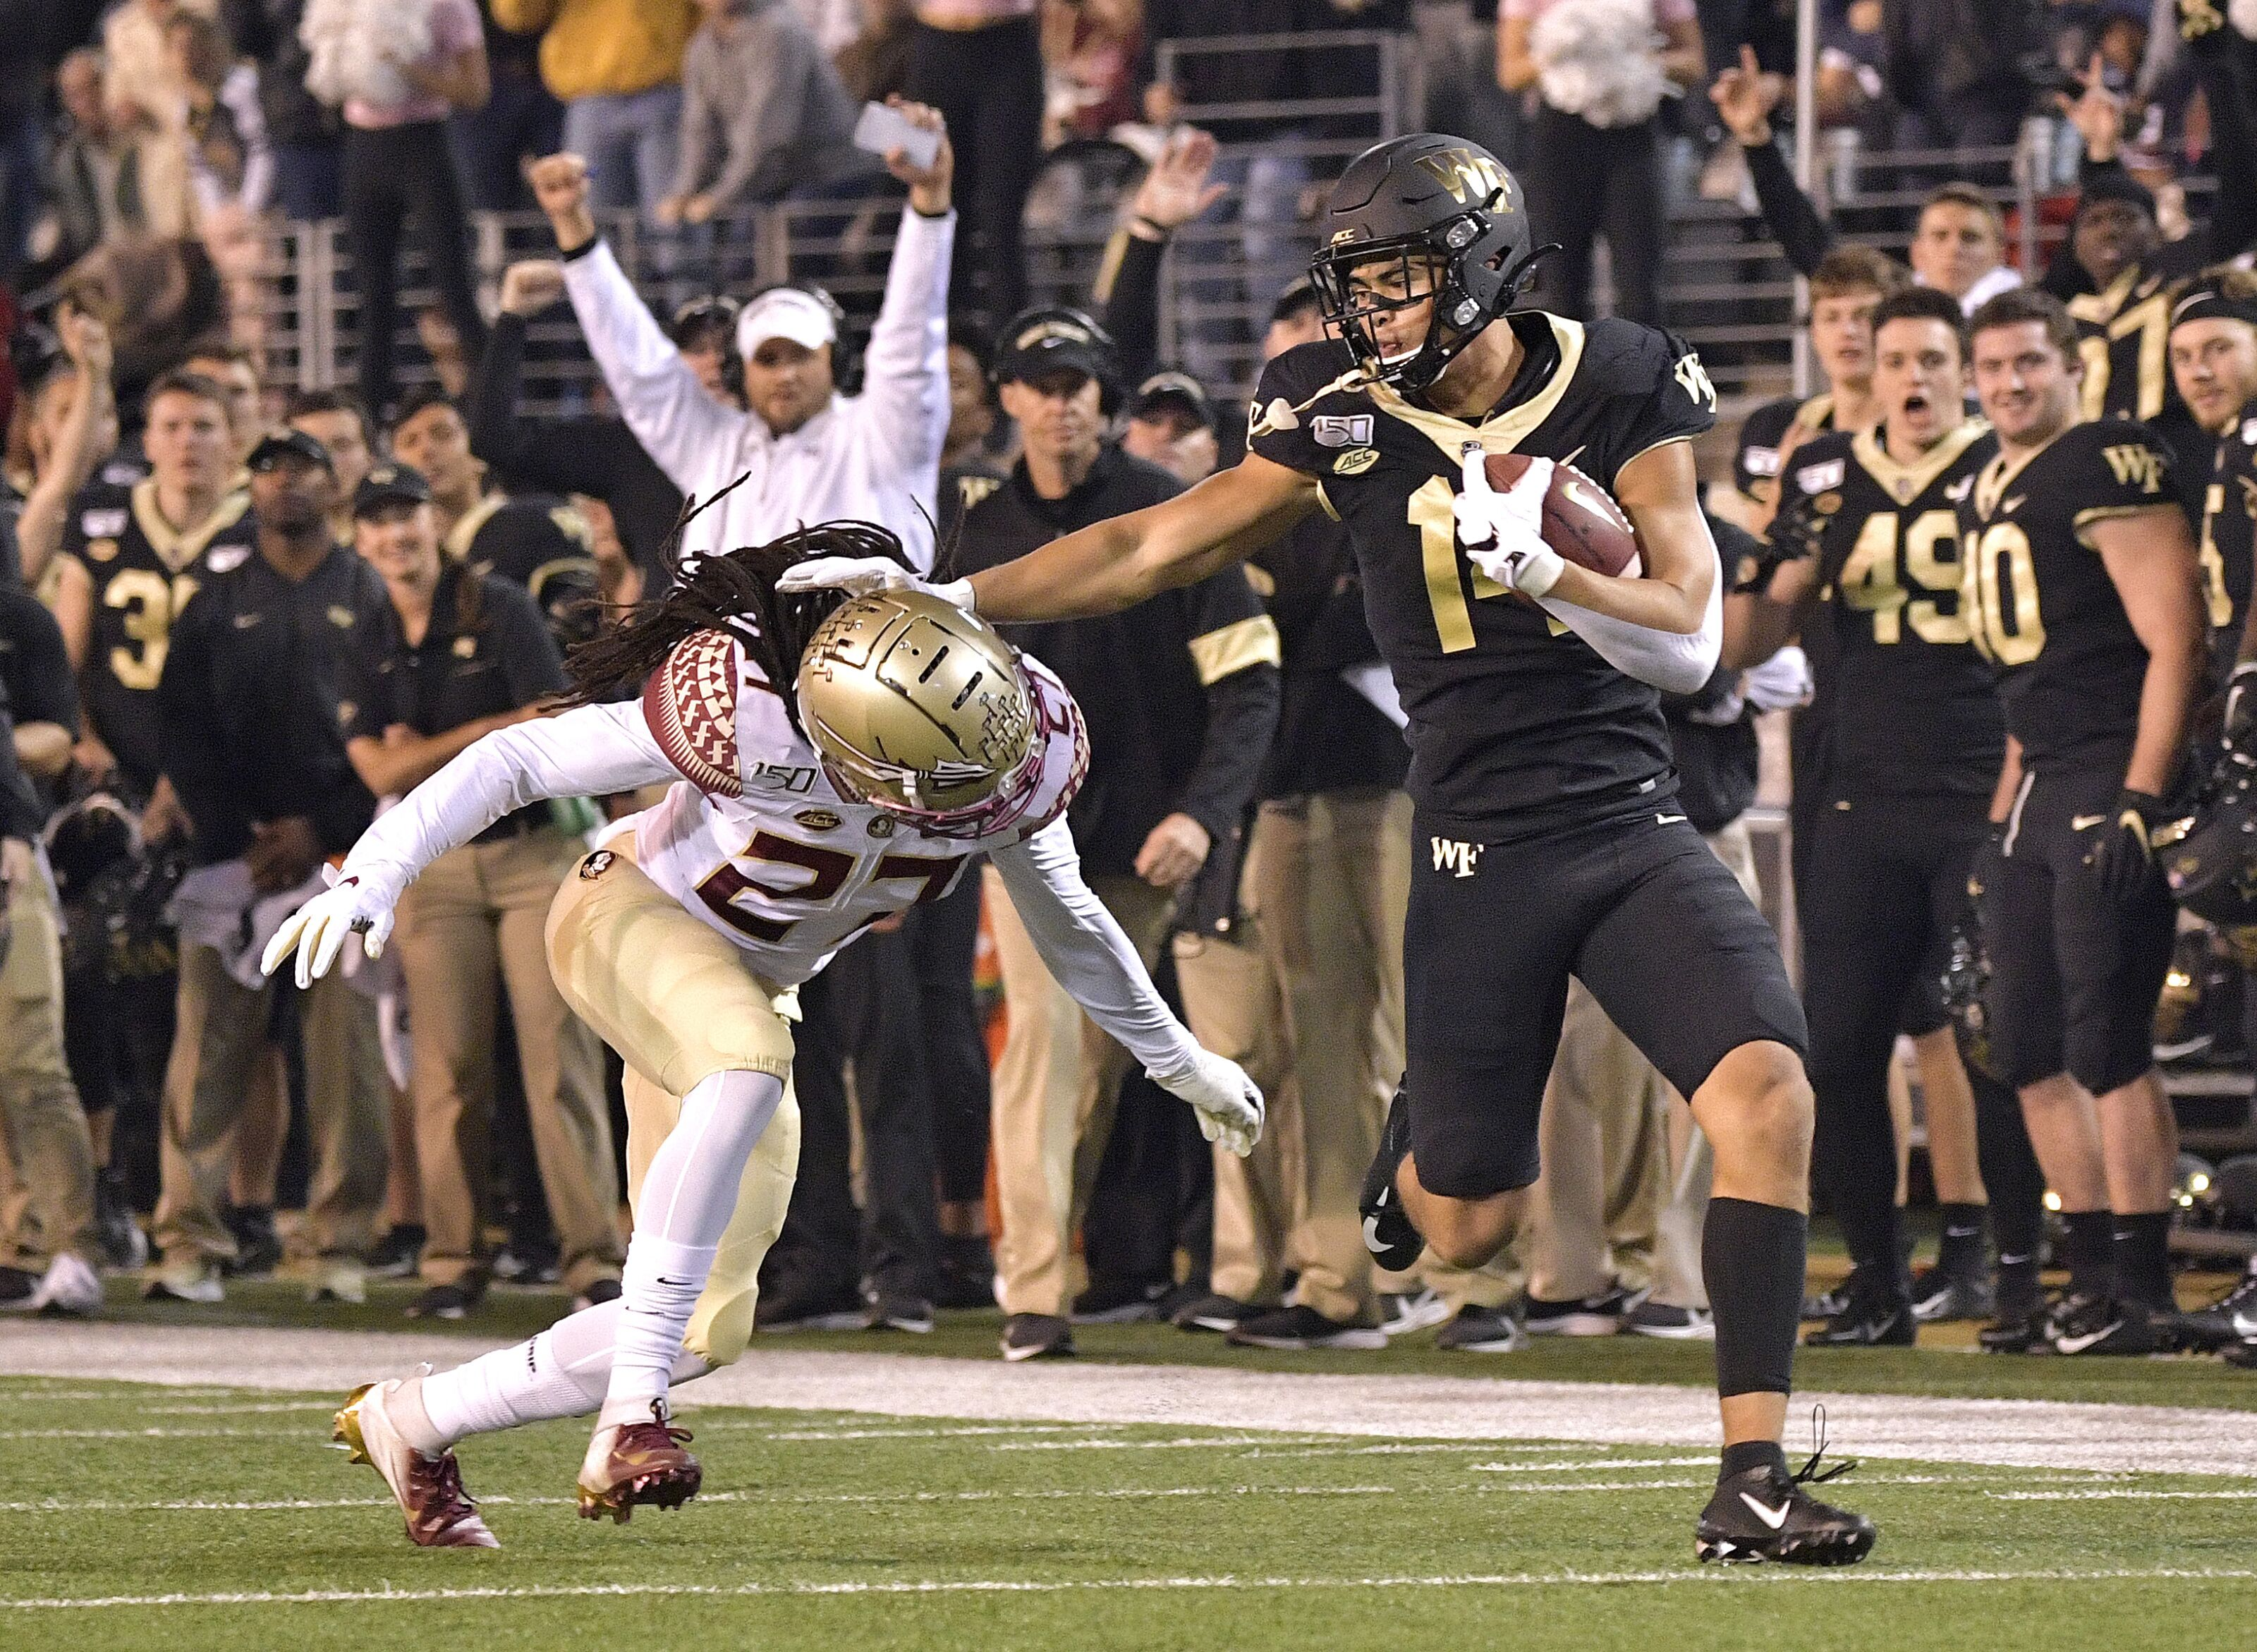 FSU Football: Checking in on #Tribe19 against Wake Forest